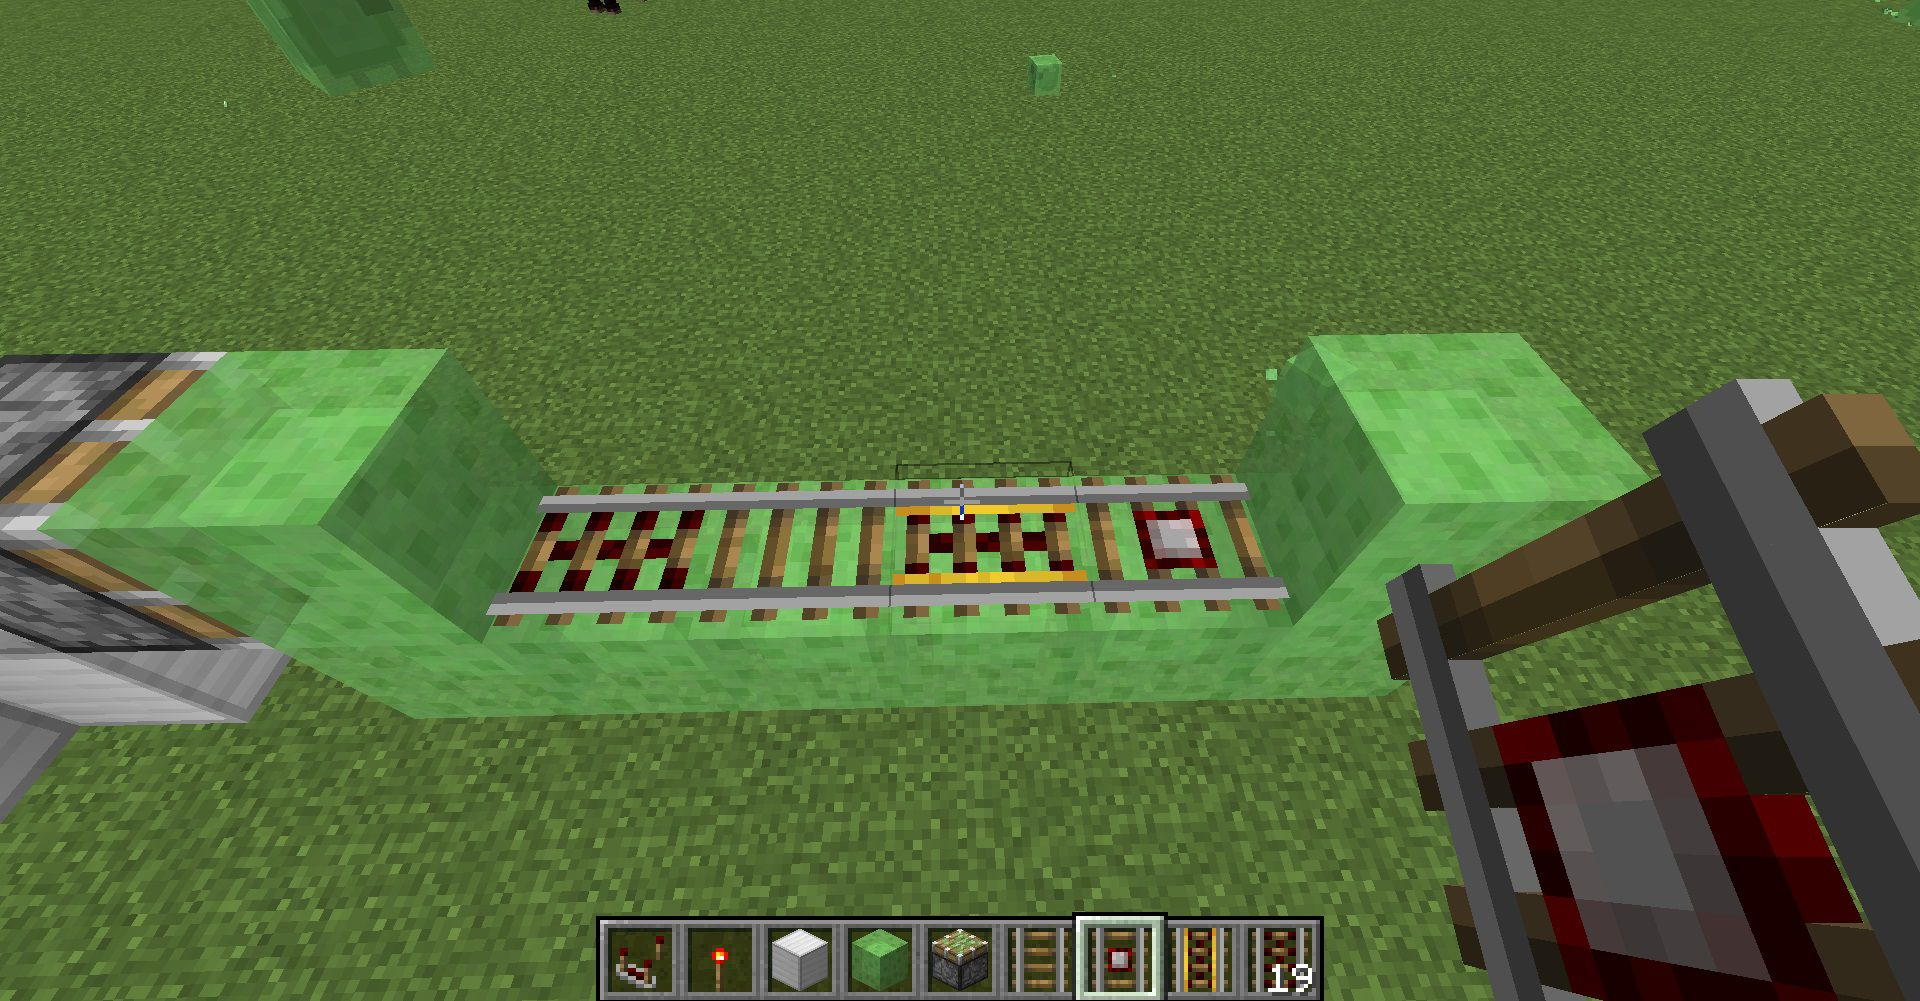 Game - Minecraft - Facile Tutorial per creare una Farm automatica che costruisce Binari ... Easy Peasy!...